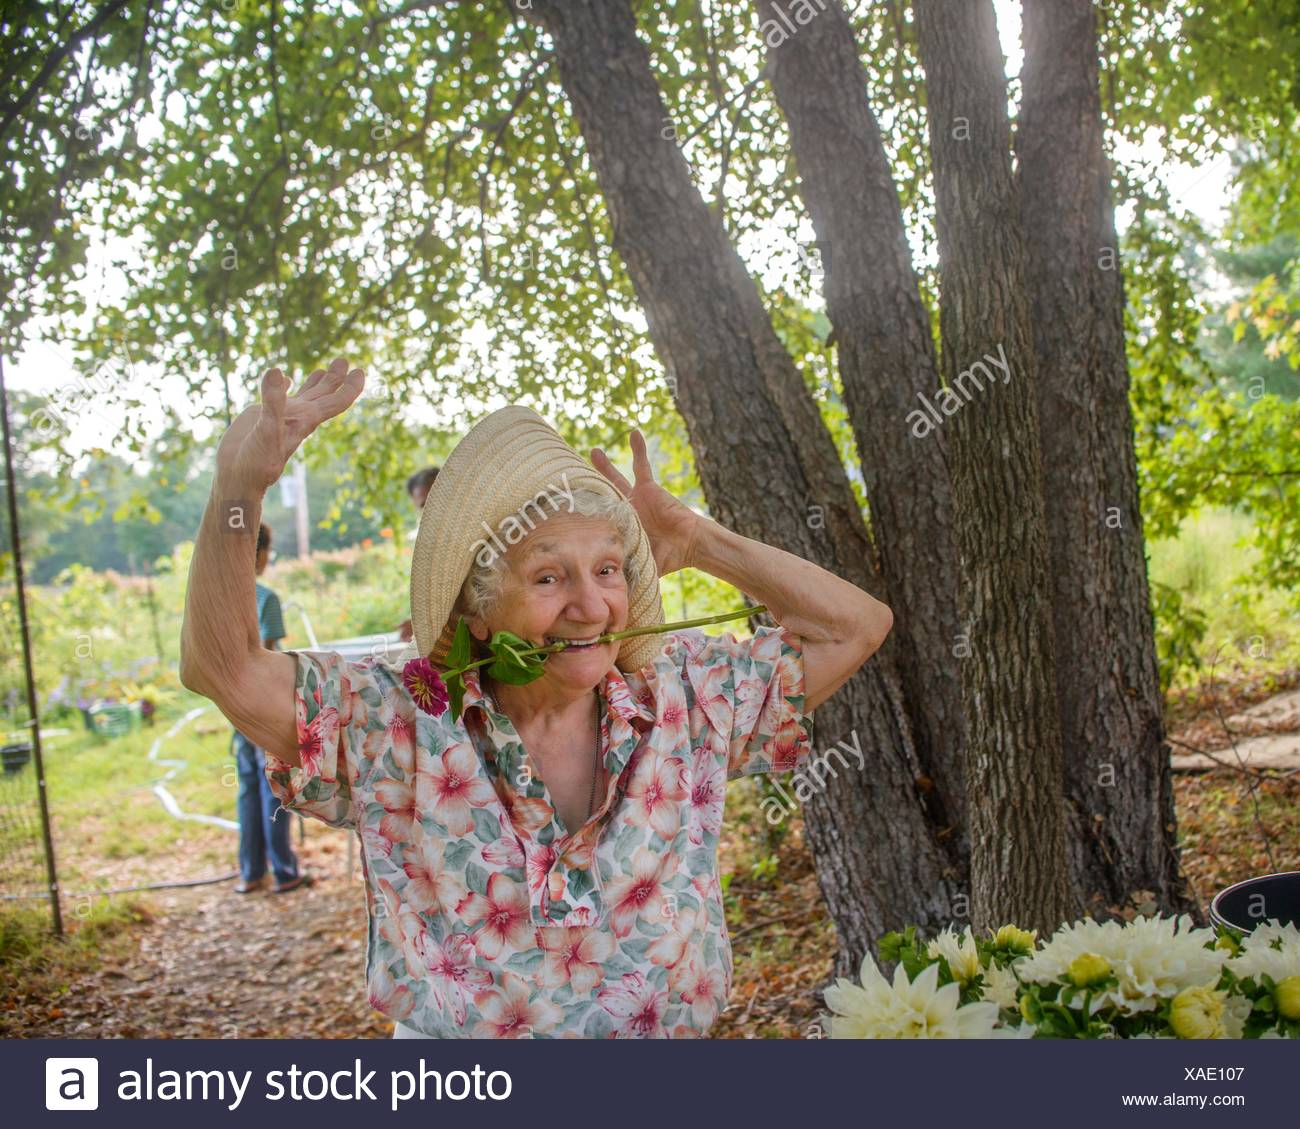 Senior woman with flower in mouth dancing on farm - Stock Image